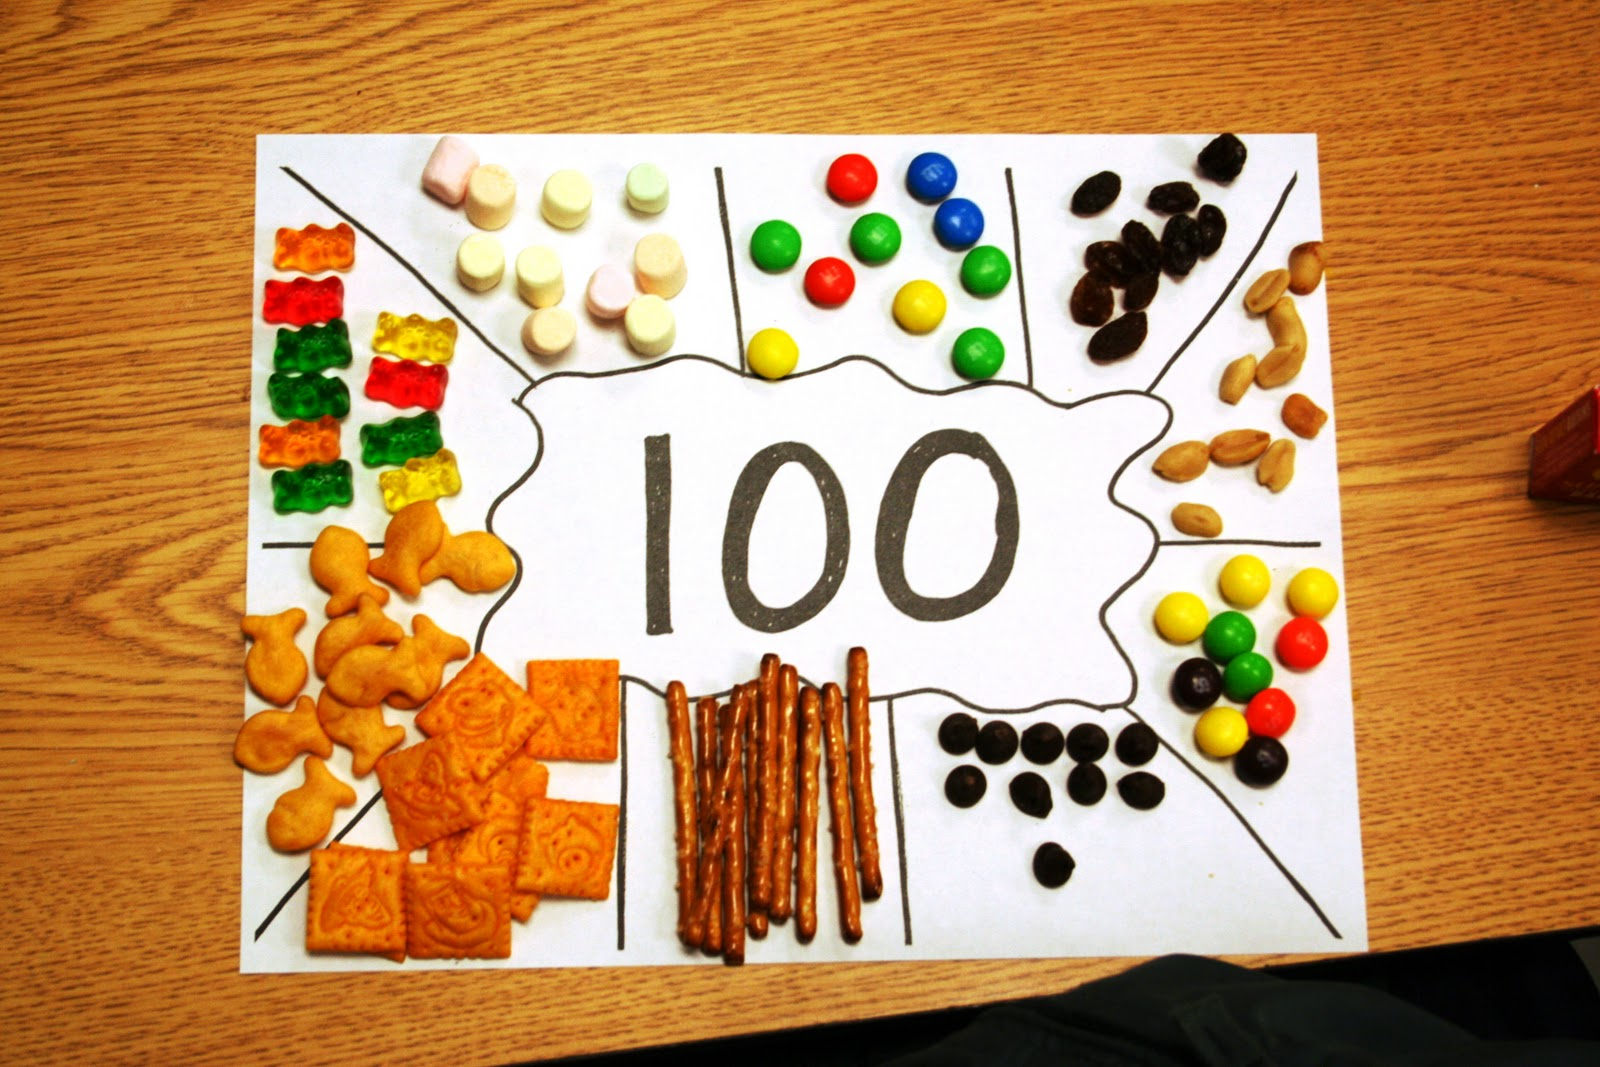 100th Day of School Snack Ideas The 100th Day of School is